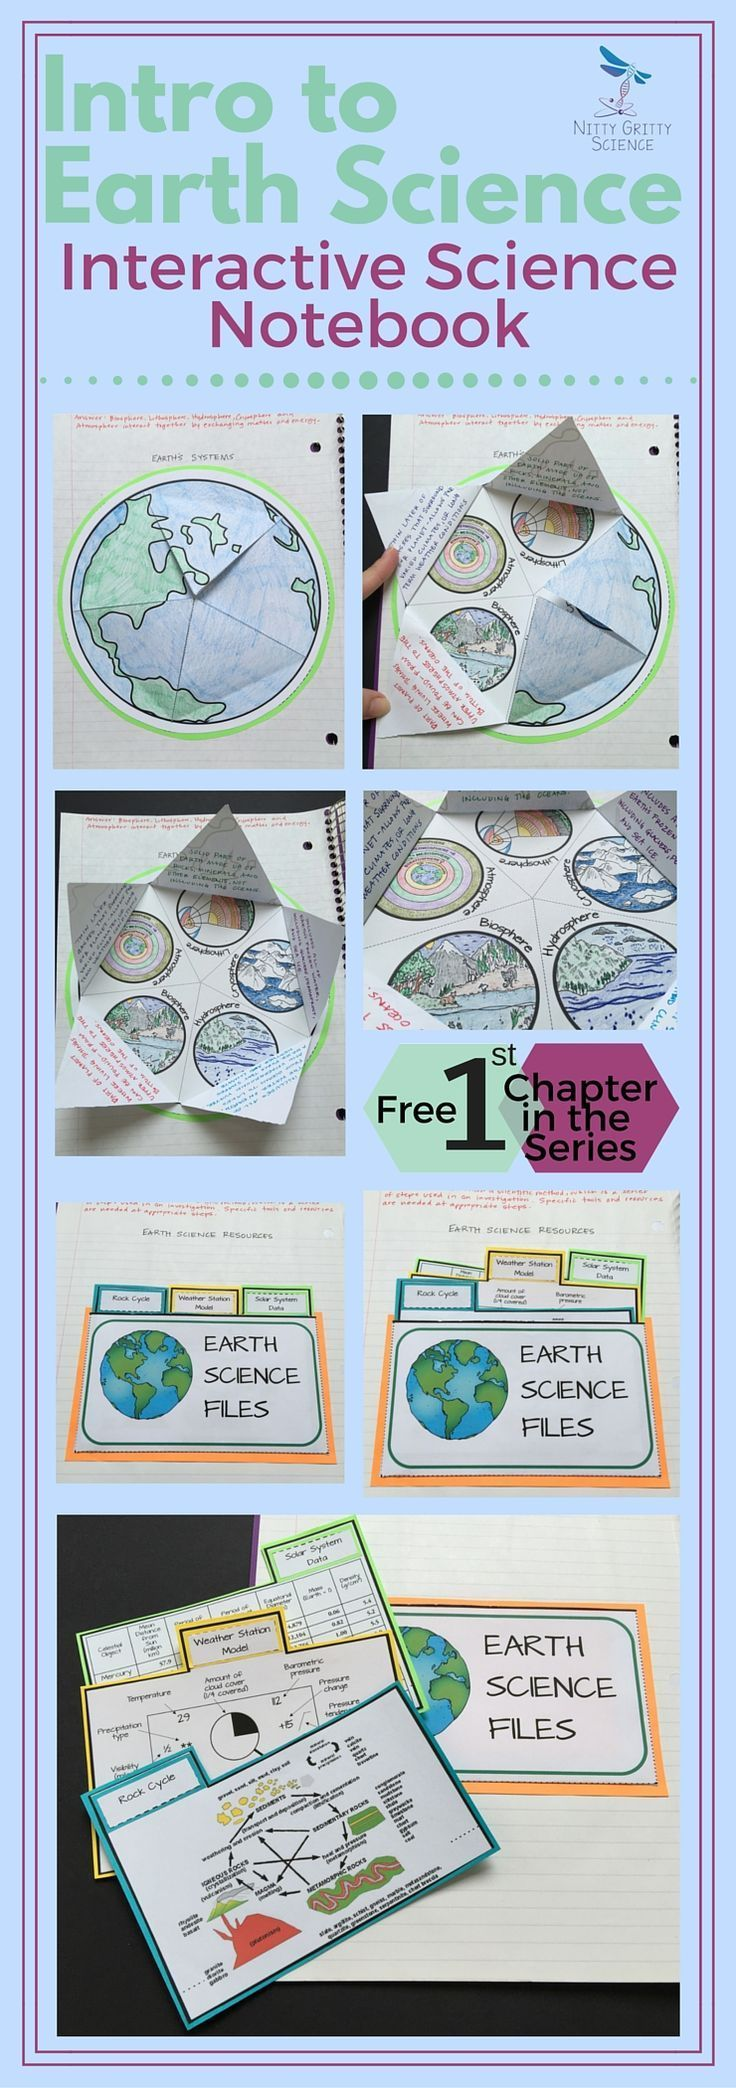 Start the school year off right with this first chapter of The Earth Science Interactive Notebook series: Intro to Earth Science. The concepts in this chapter will introduce some key vocabulary and enable students to start understanding the different systems of Earth and all the branches of science that Earth Science entails. Each chapter in the series will showcase many activities for the students (both middle and high school) to process the information given by teachers.